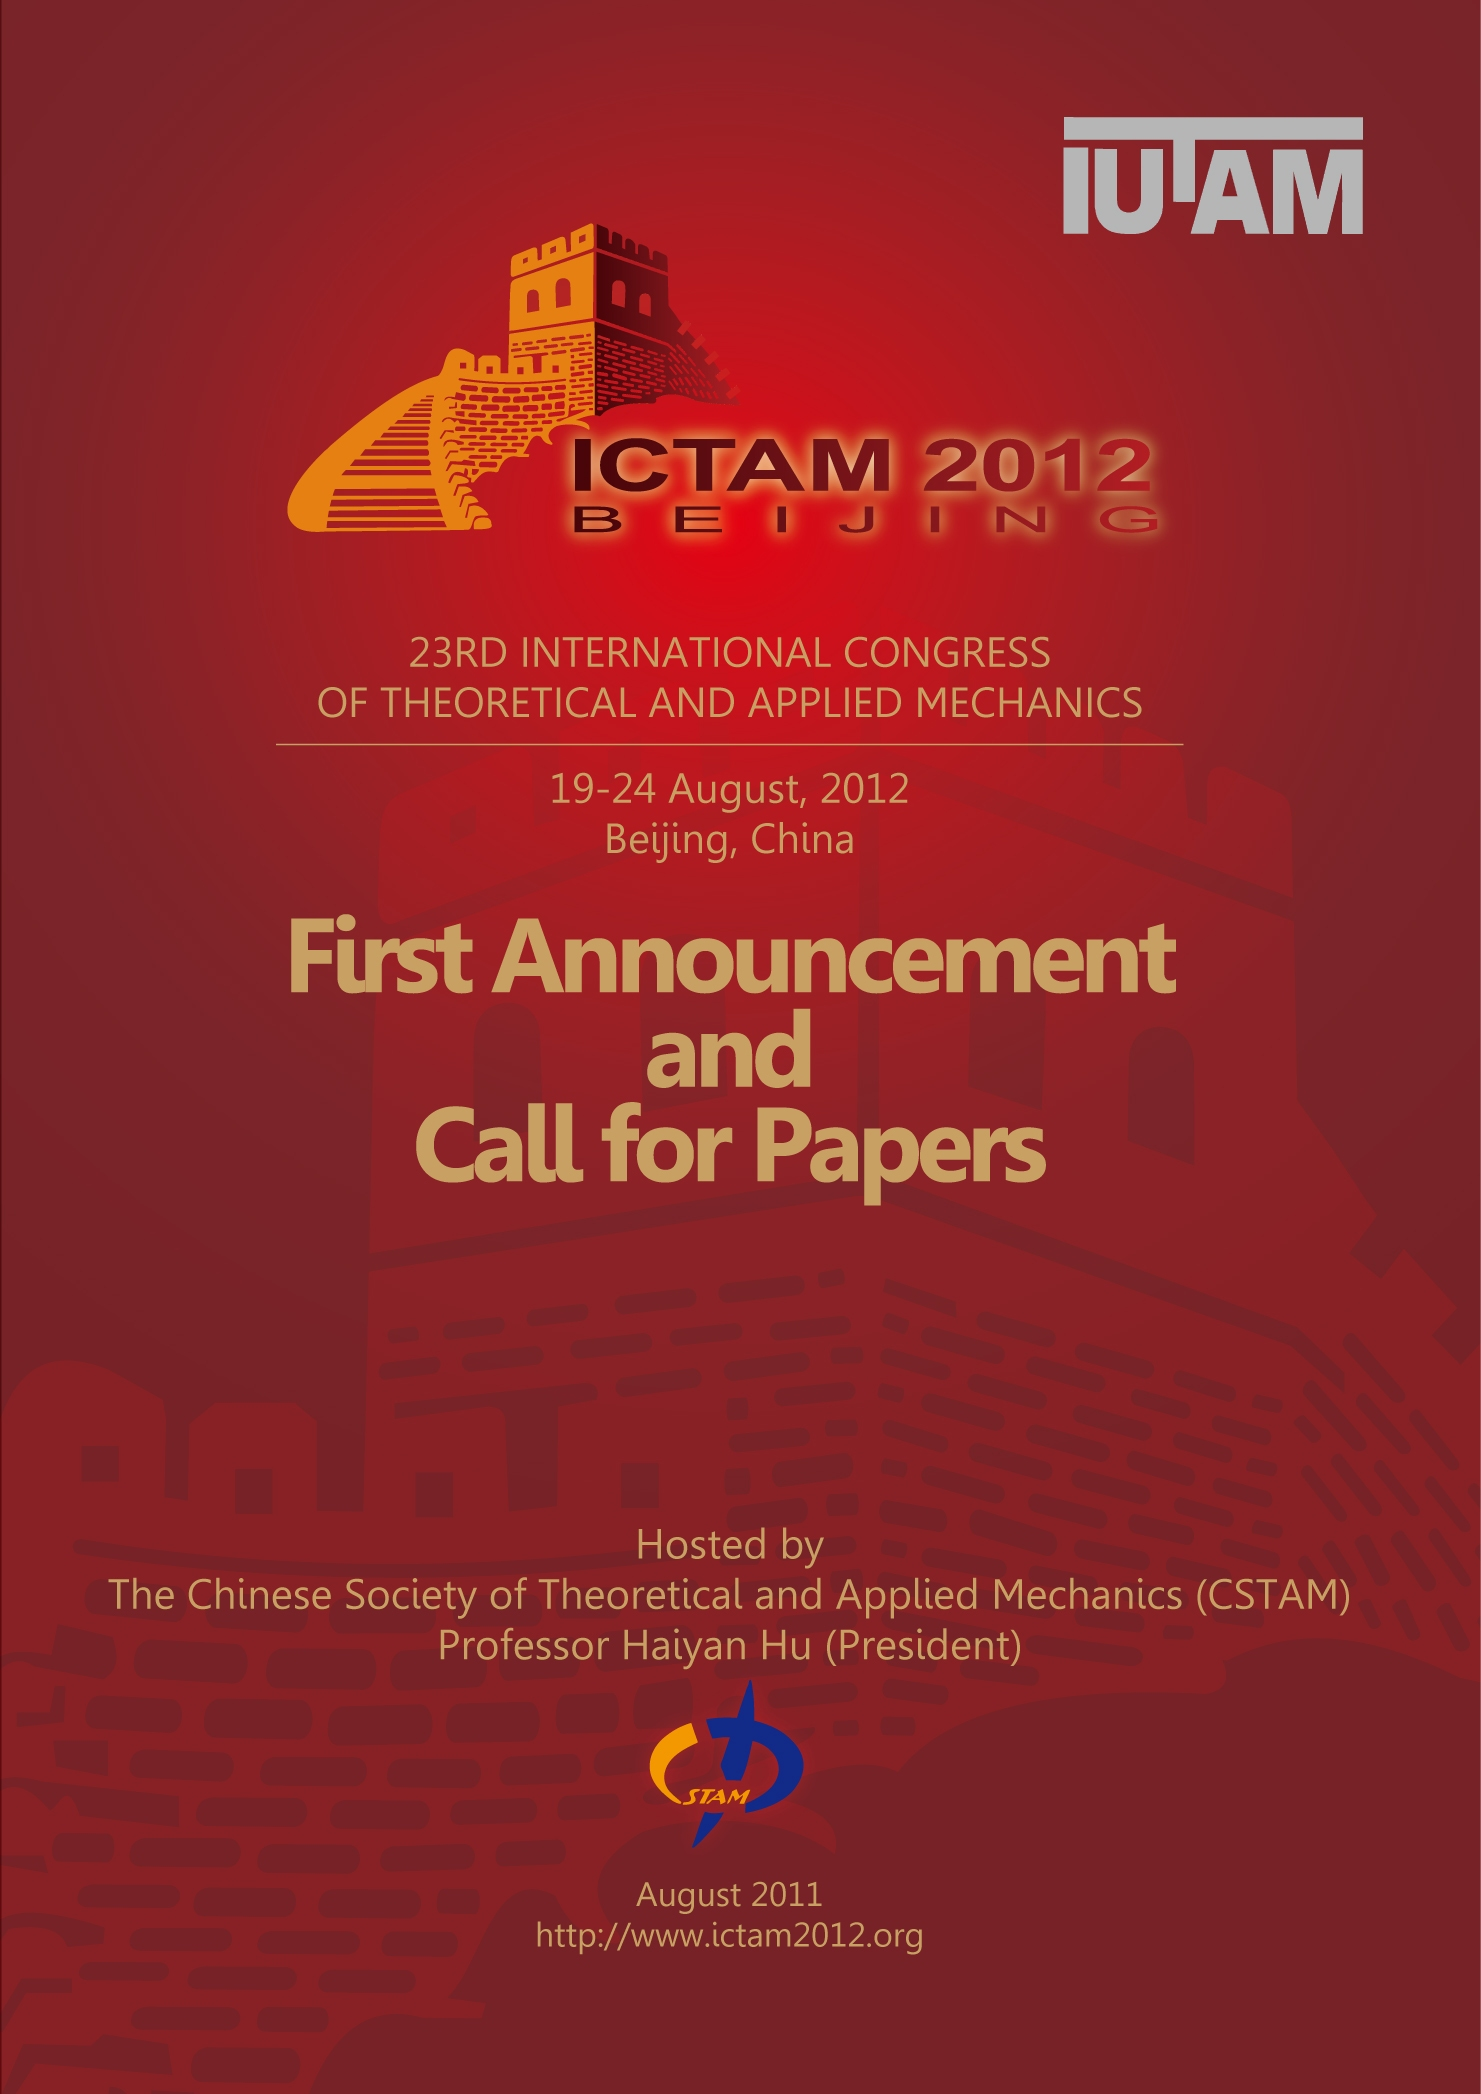 First Announcement & Call for Papers